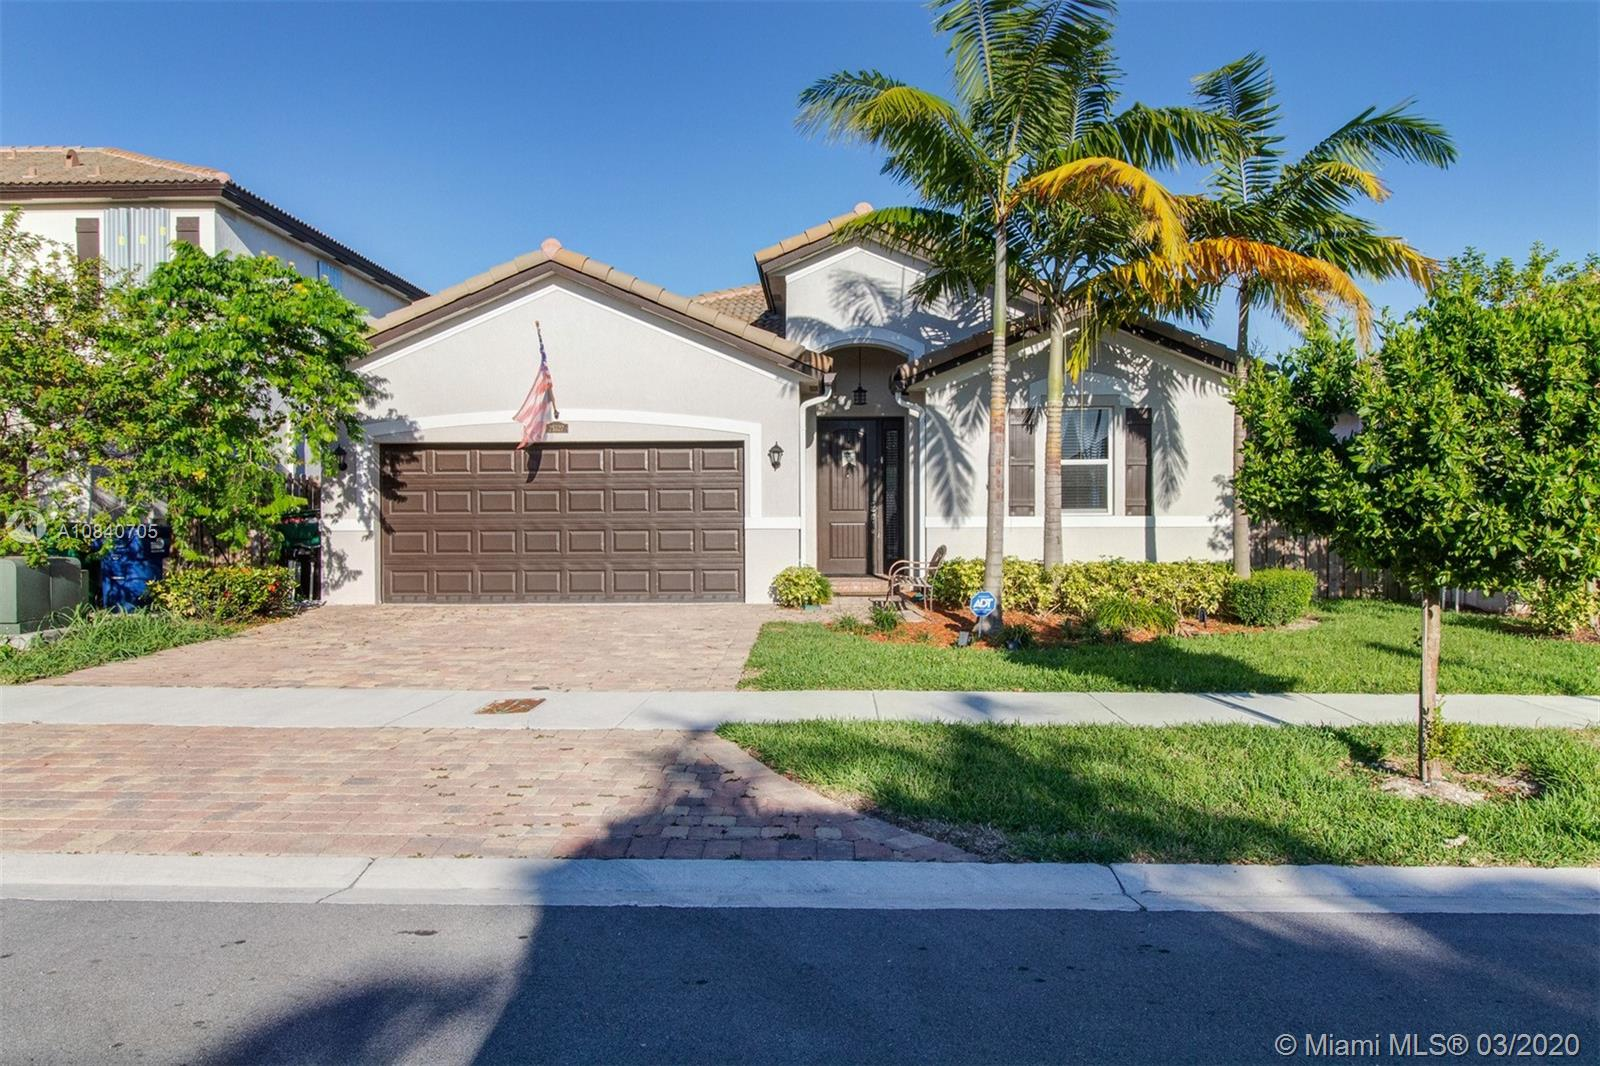 25327 SW 121st Ave, Homestead, FL 33032 - Homestead, FL real estate listing